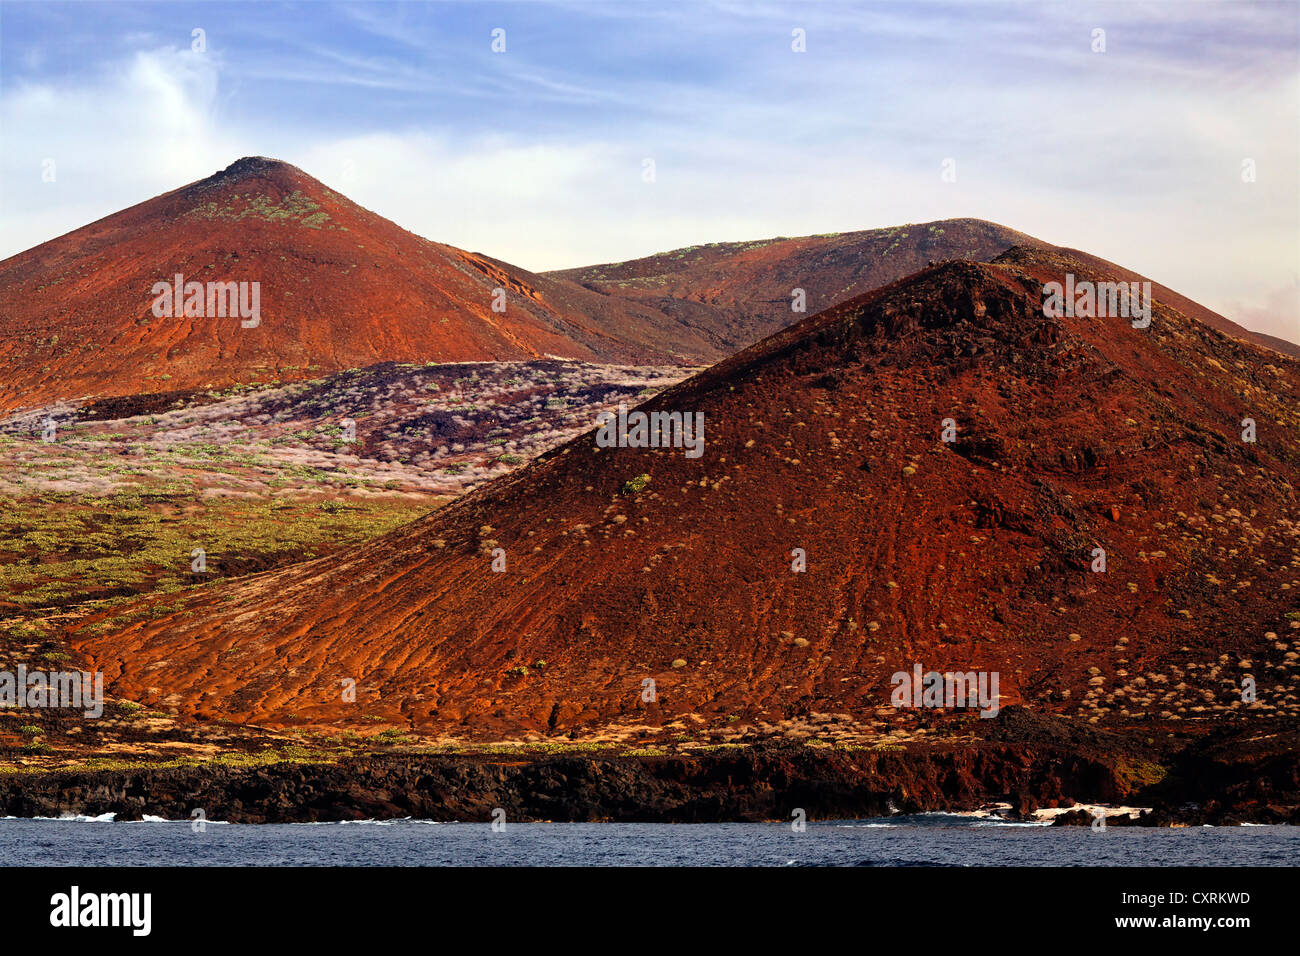 Barren landscape of volcanic hills on the coast, San Benedicto Island, near Socorro, Revillagigedo Islands, archipelago, - Stock Image